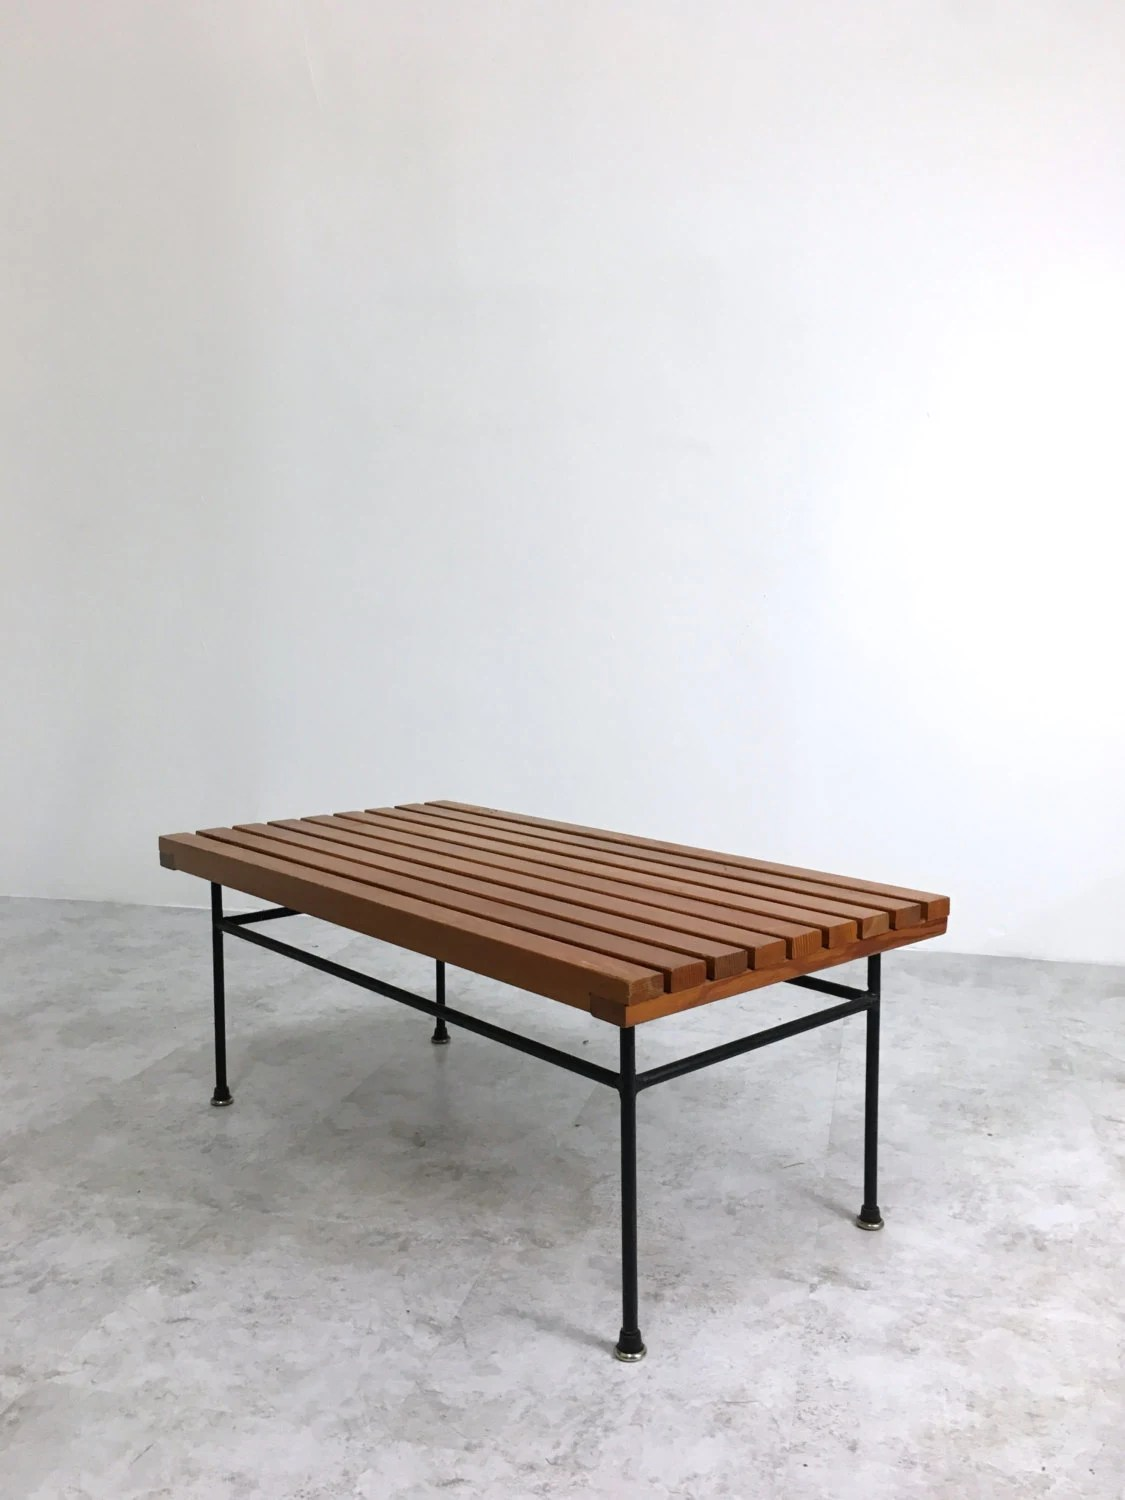 Vintage Mid Century Modern Wood Slat Iron Bench Coffee Or